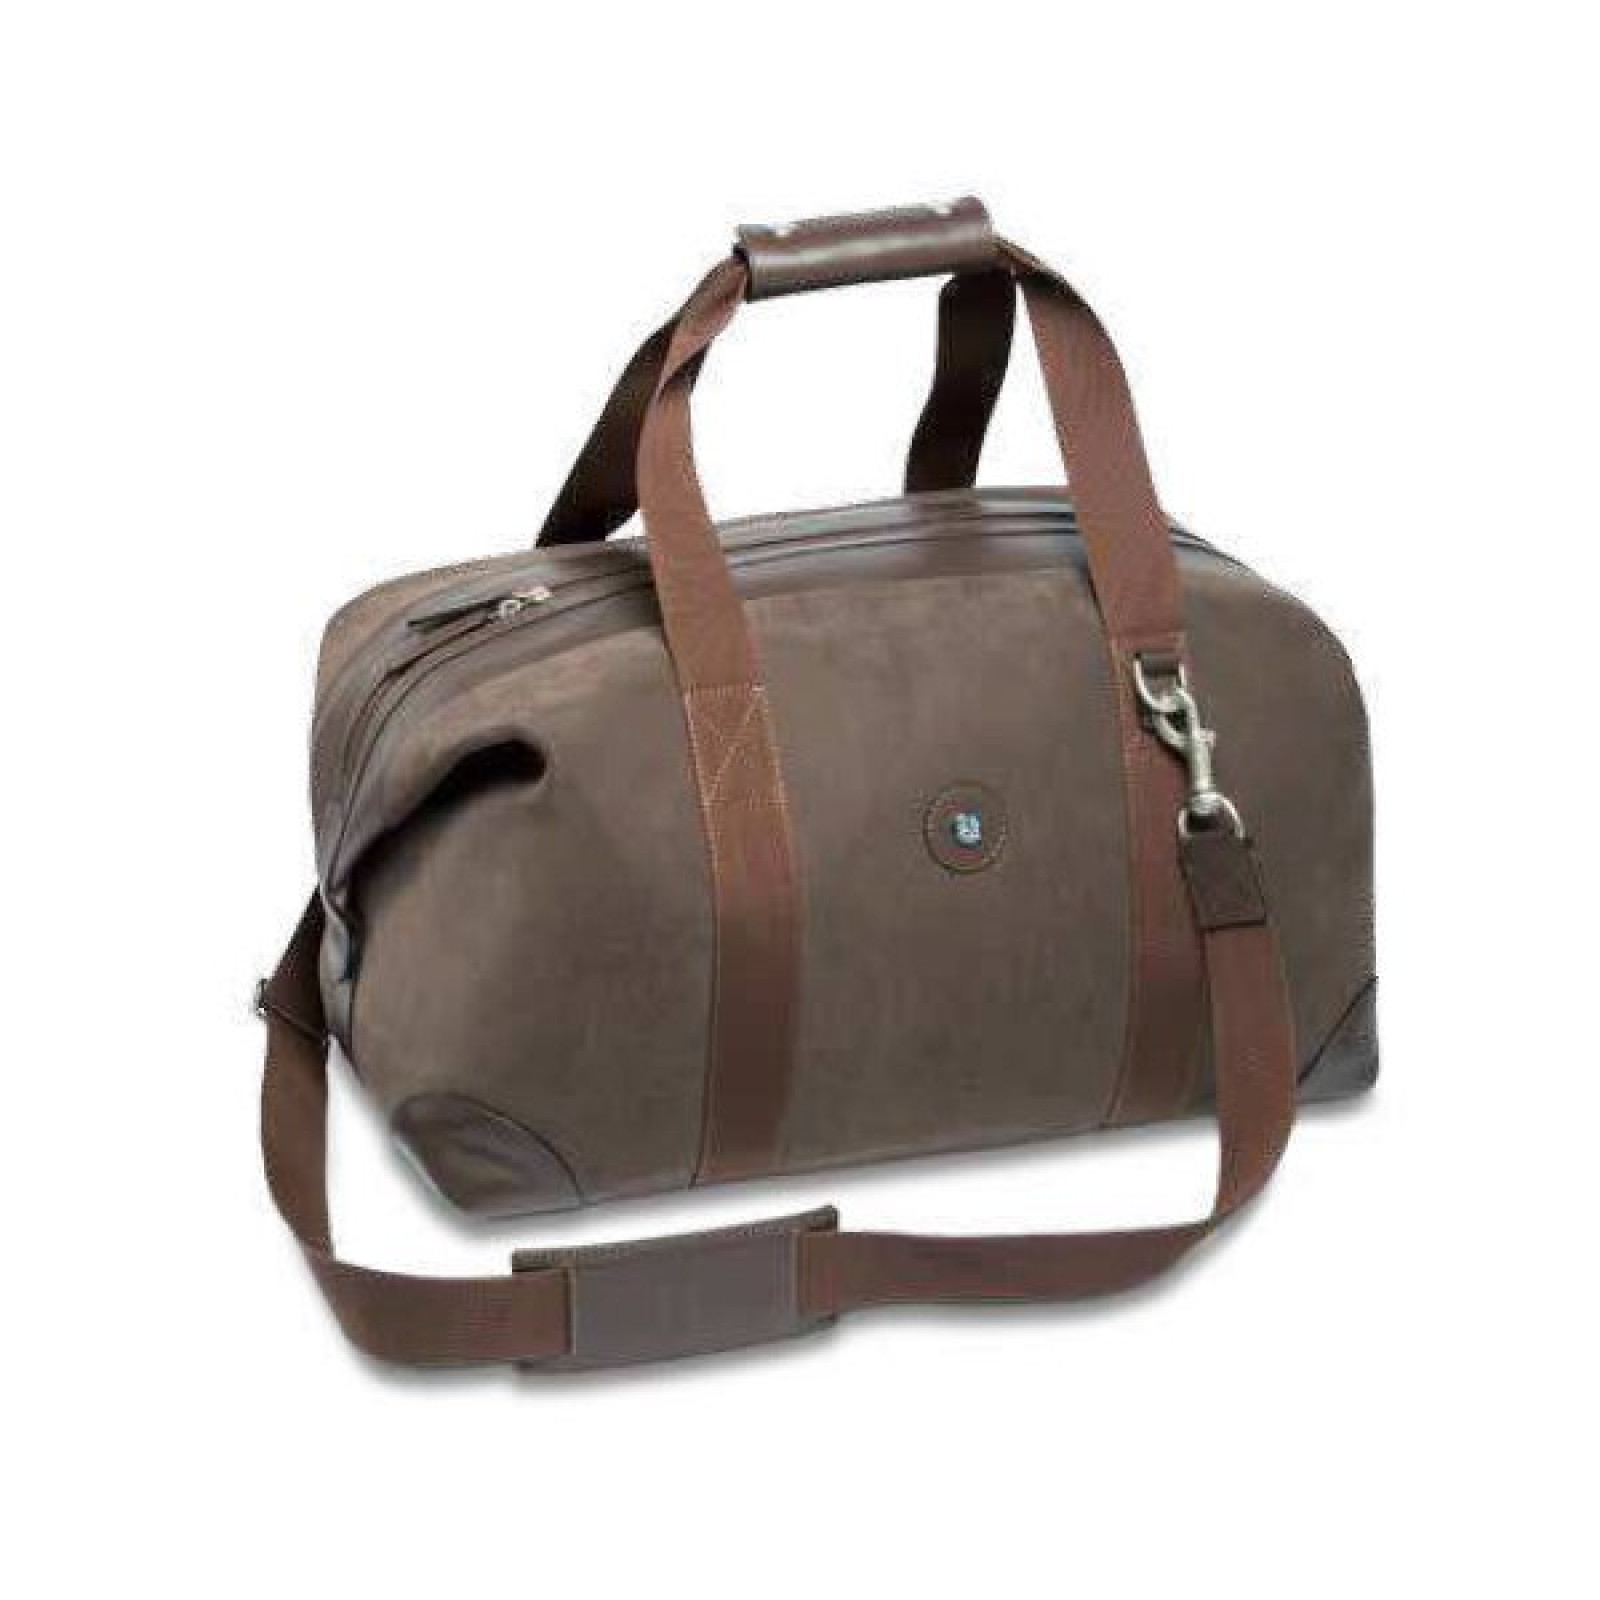 Mercedes benz official leather classic weekend bag brown for Mercedes benz purse